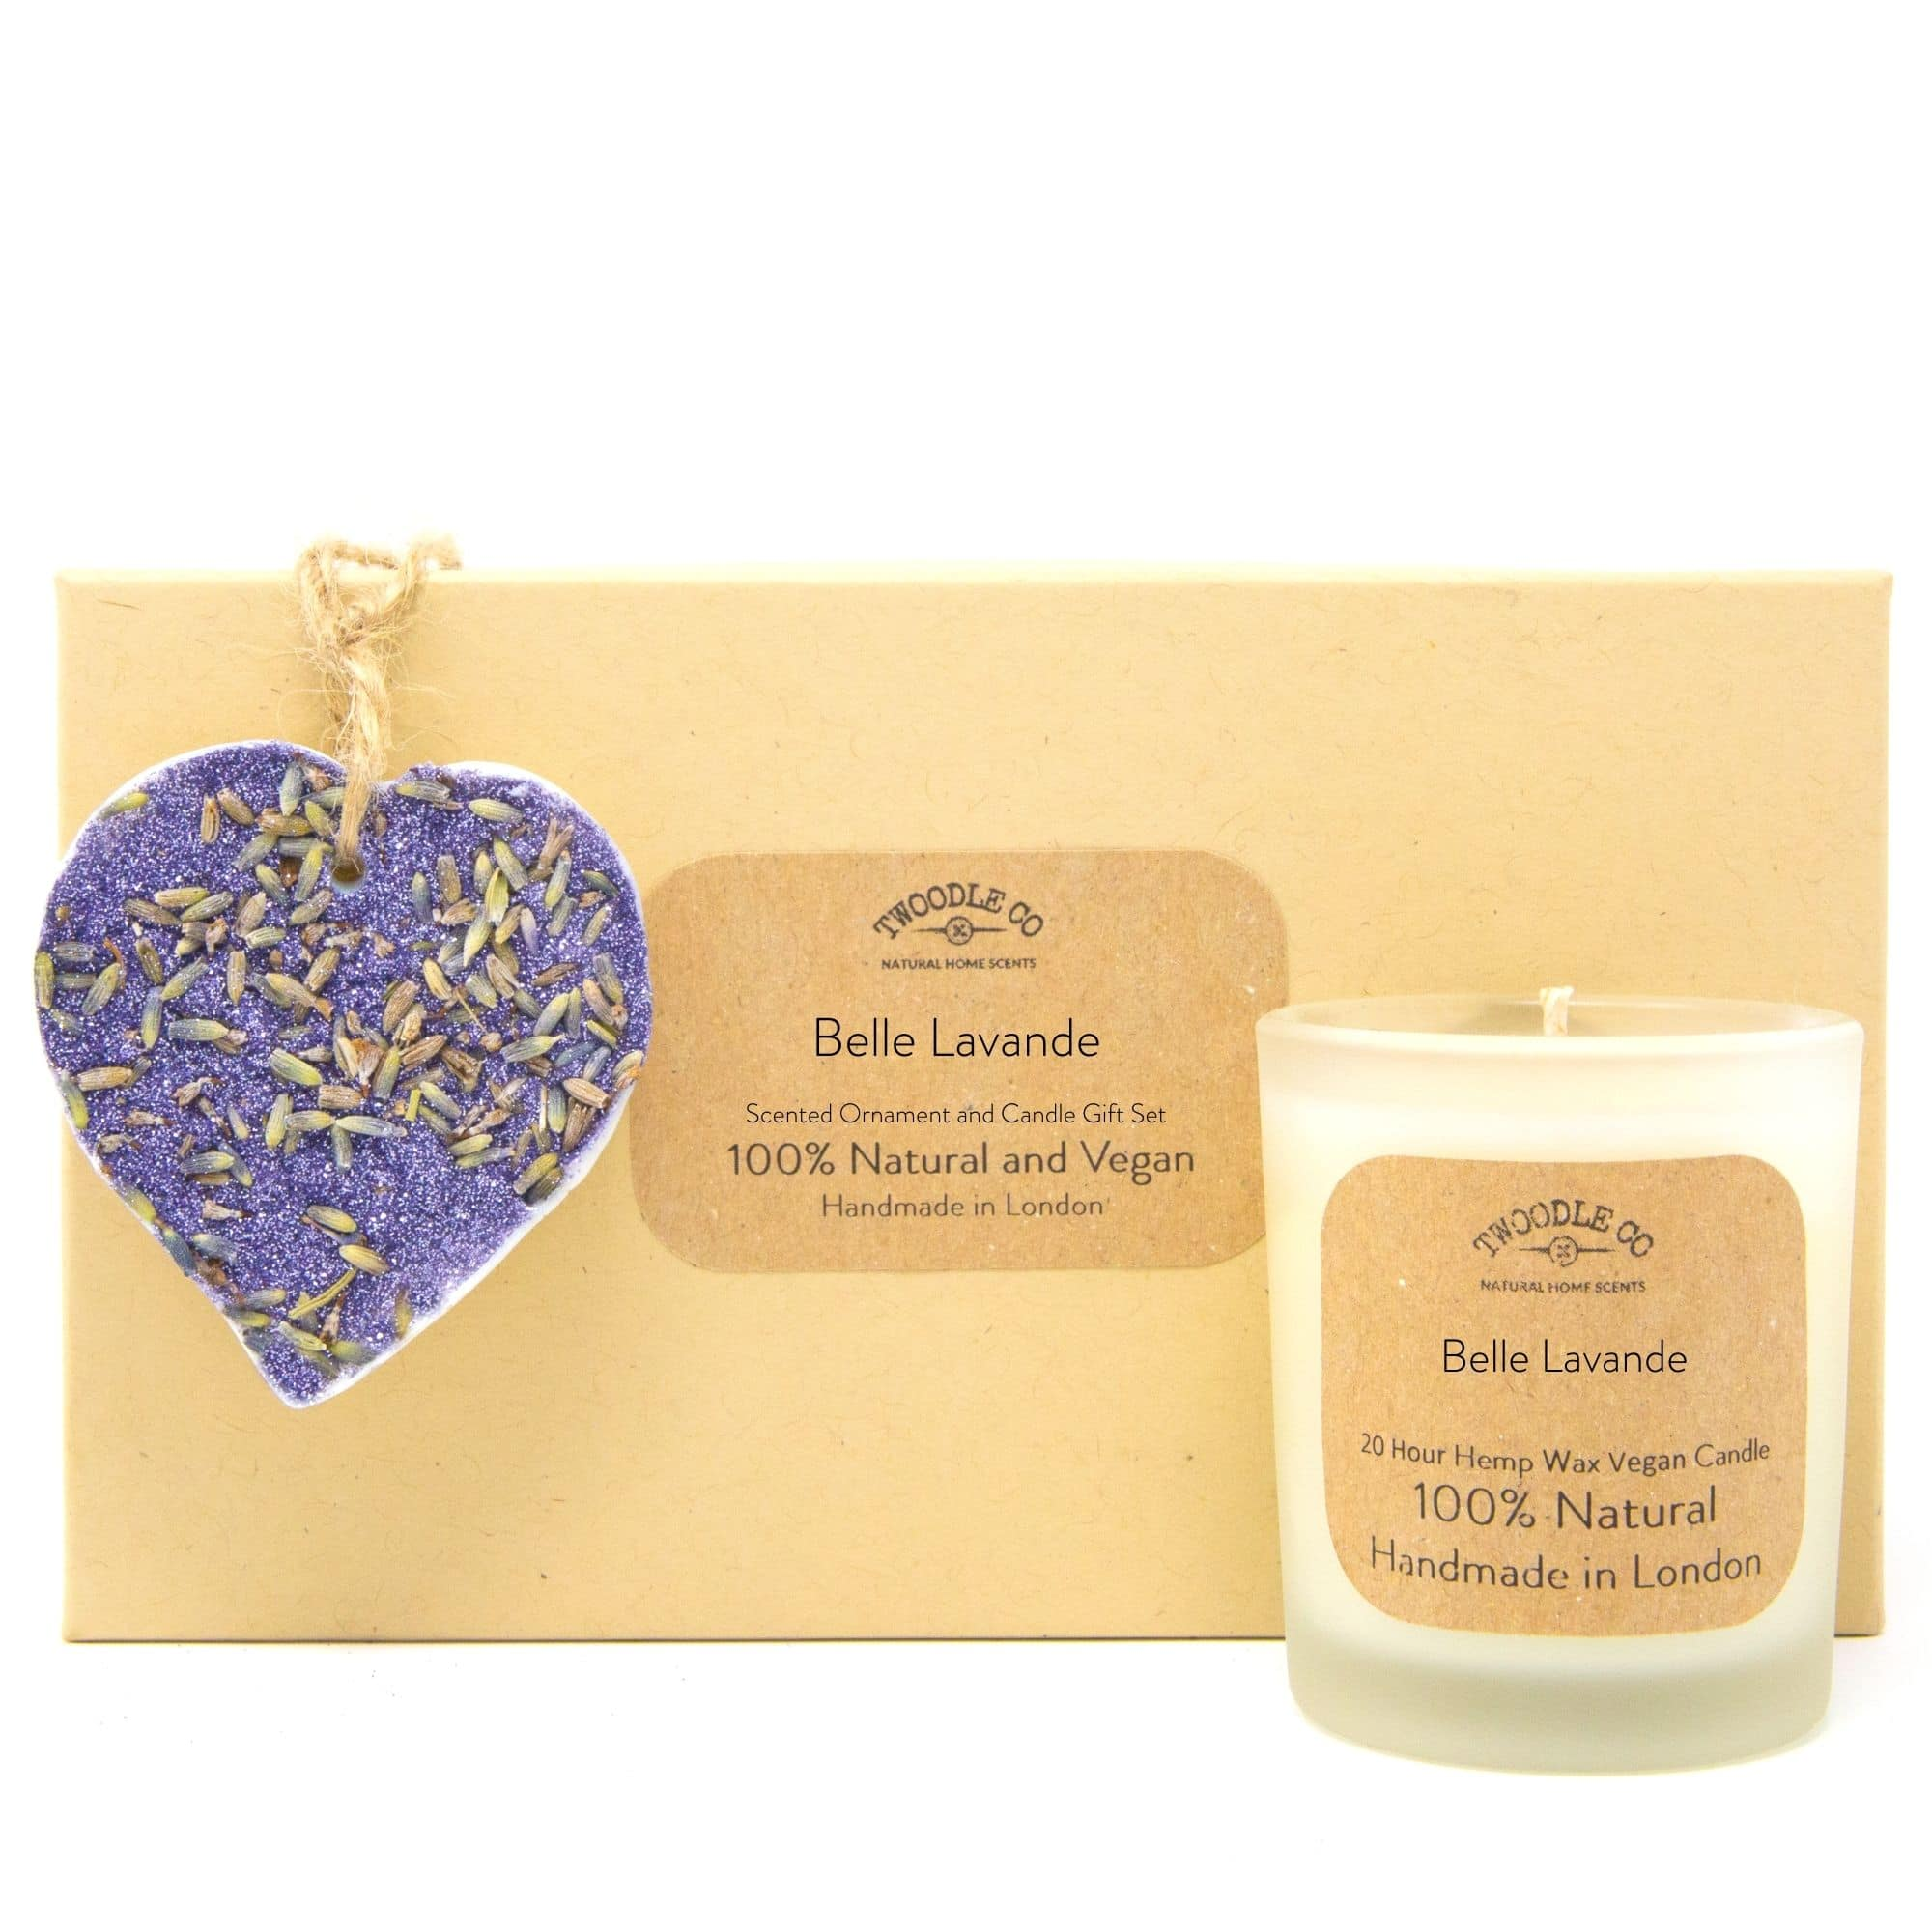 Belle Lavande | Scented Ornament and Candle Gift Set